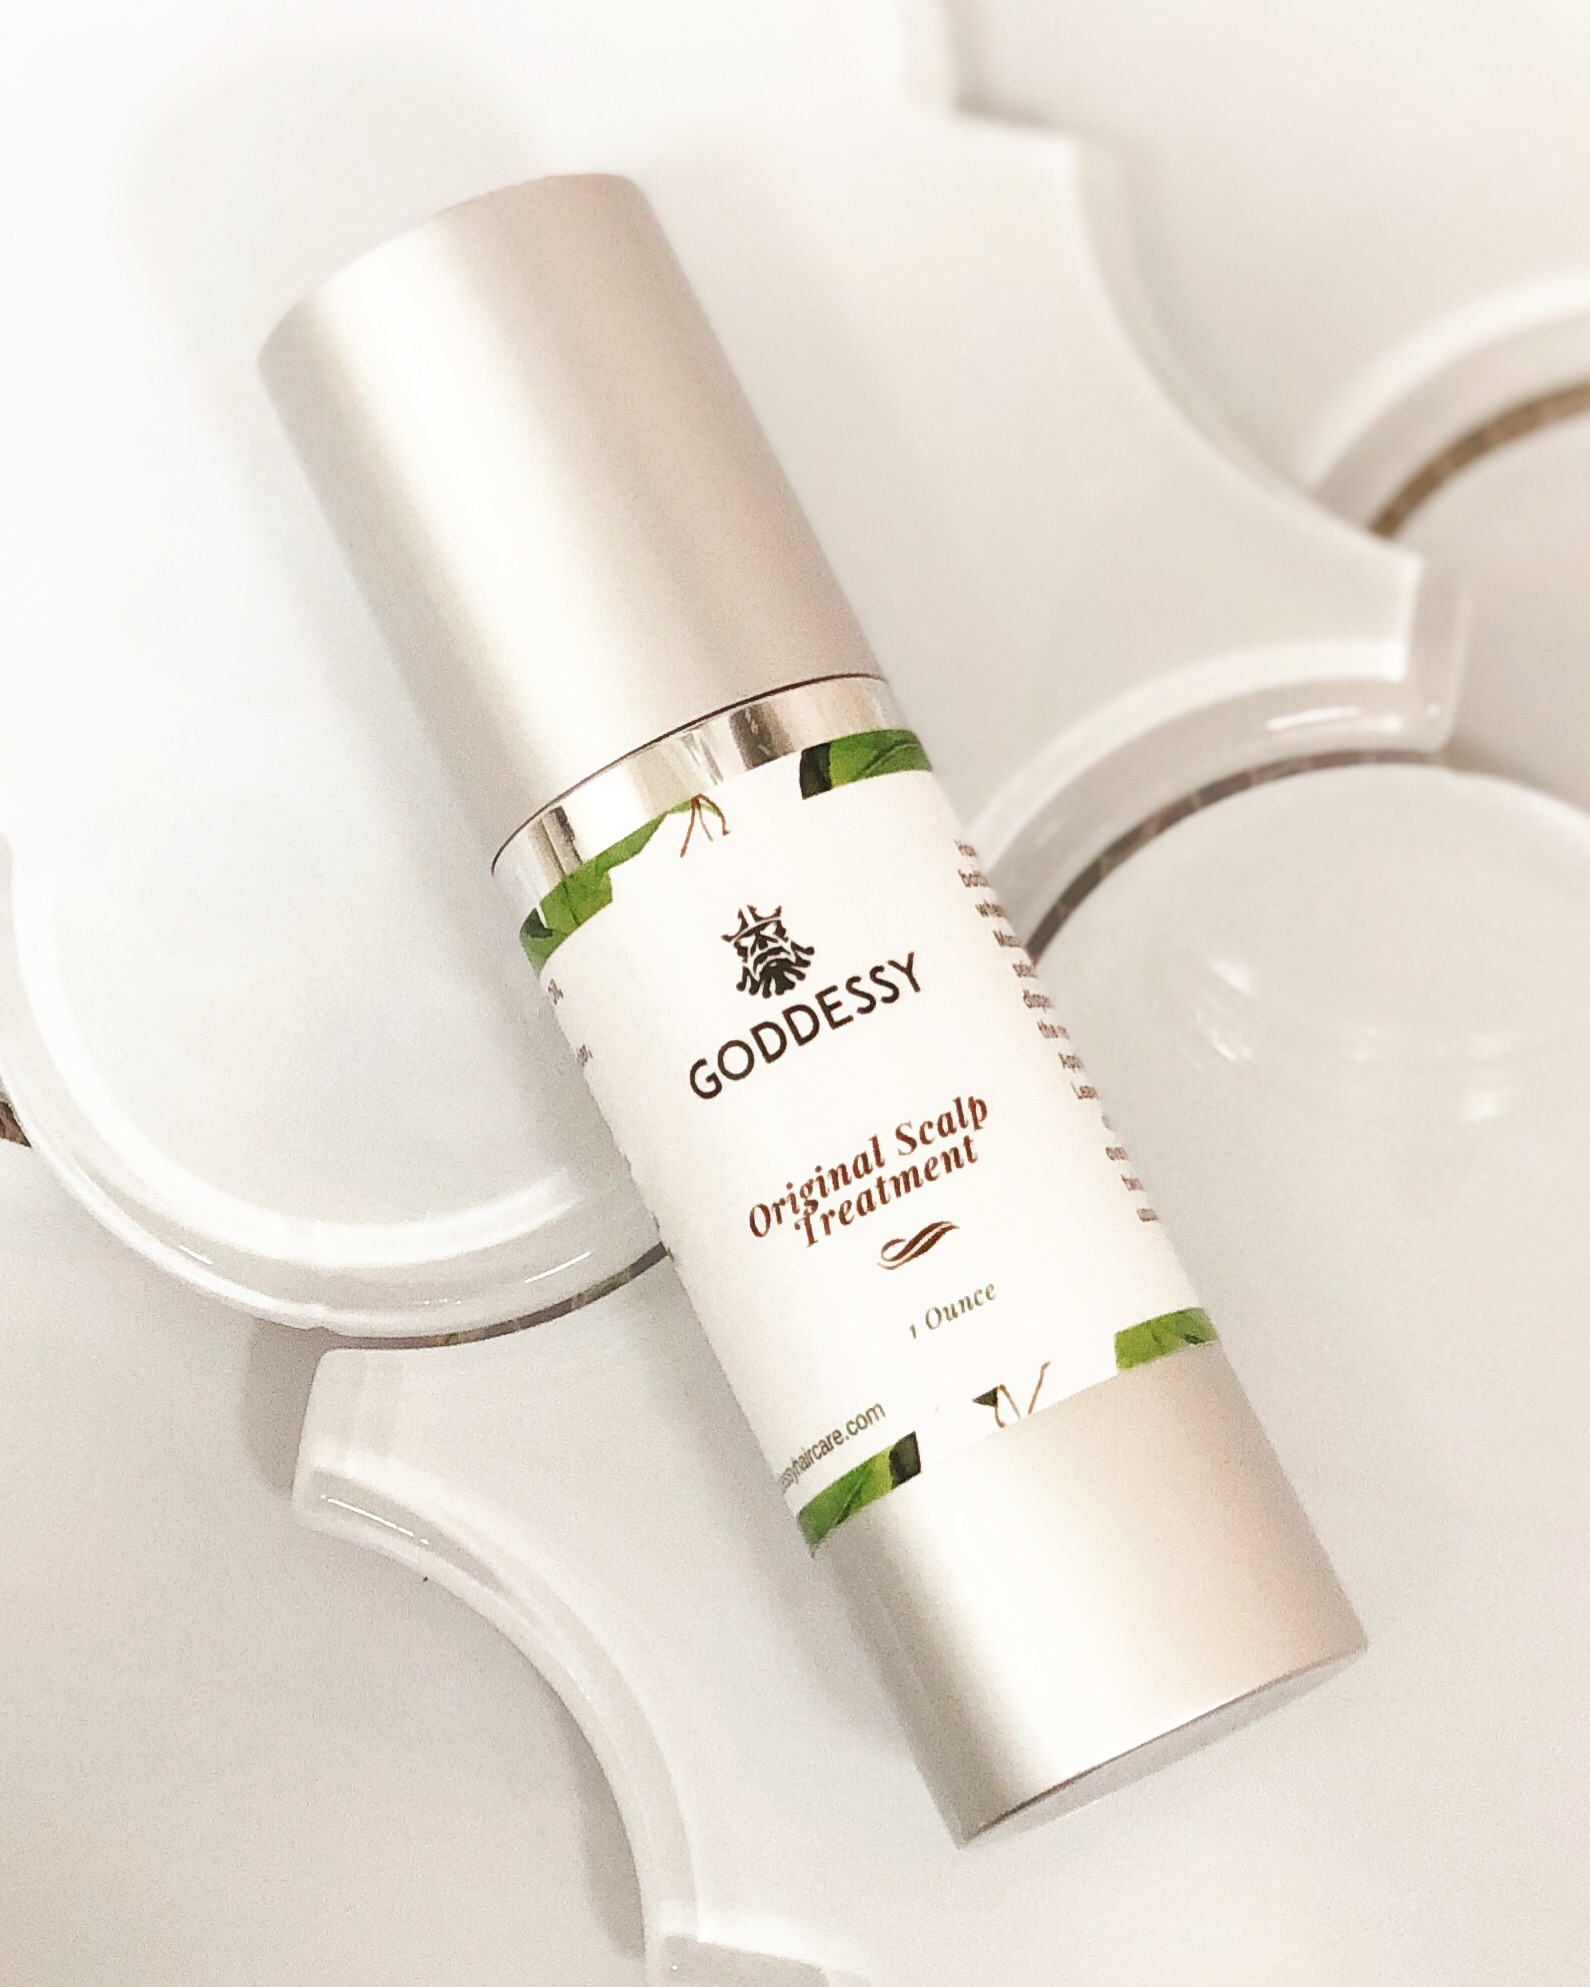 Goddessy Original Scalp Treatment - Our most popular product. Helping people get rid of their scalp issues & grow their hair back!